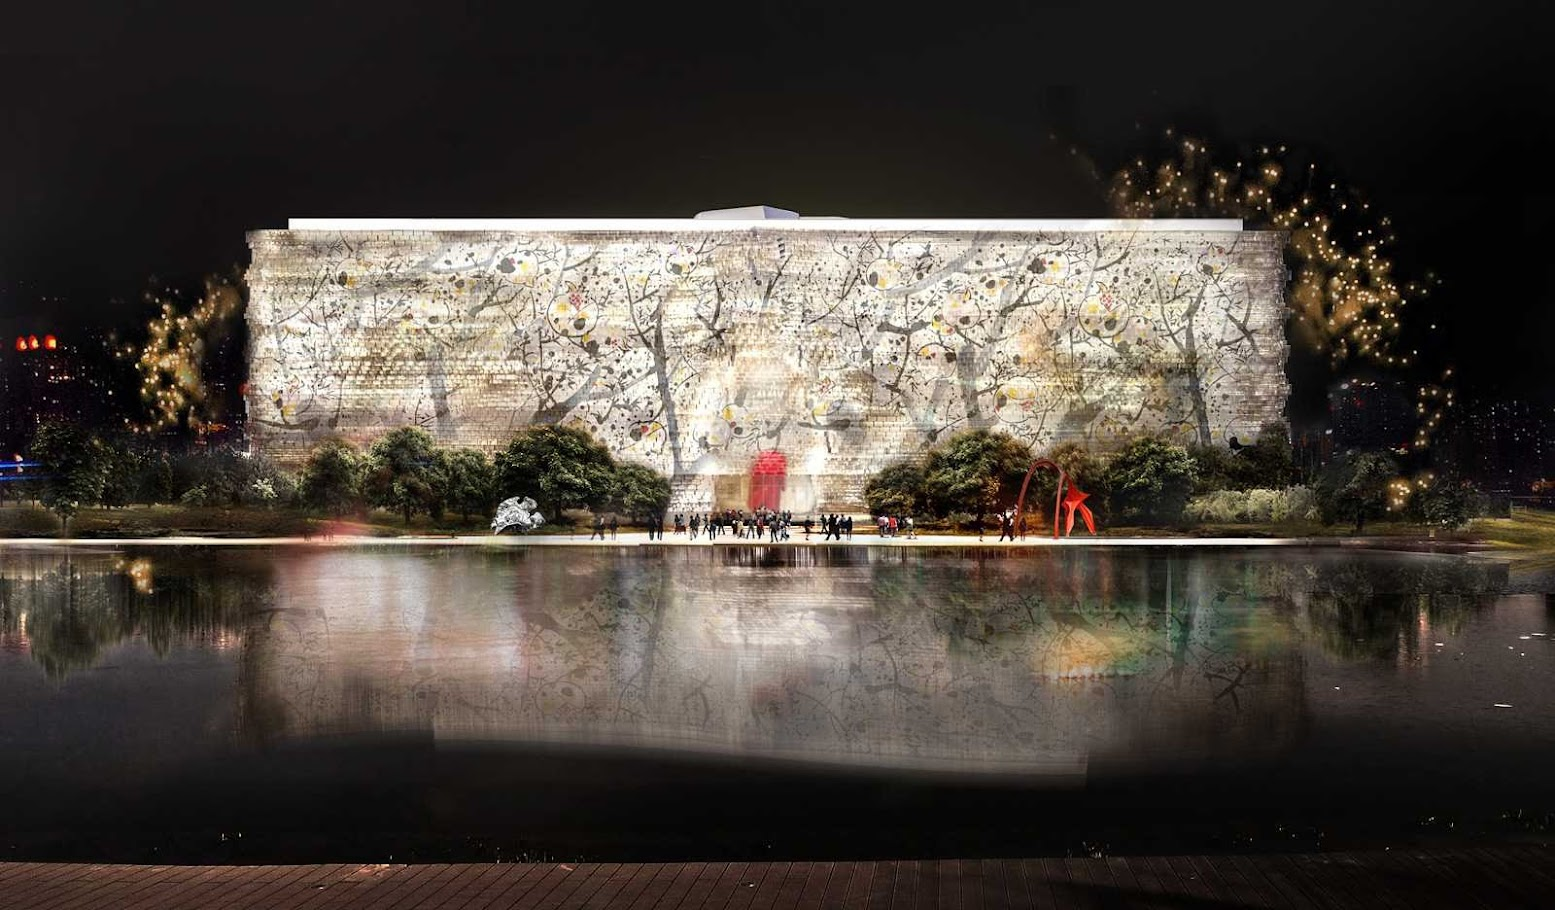 Pechino, Cina: [JEAN NOUVEL WINS NATIONAL ART MUSEUM OF CHINA COMPETITION]